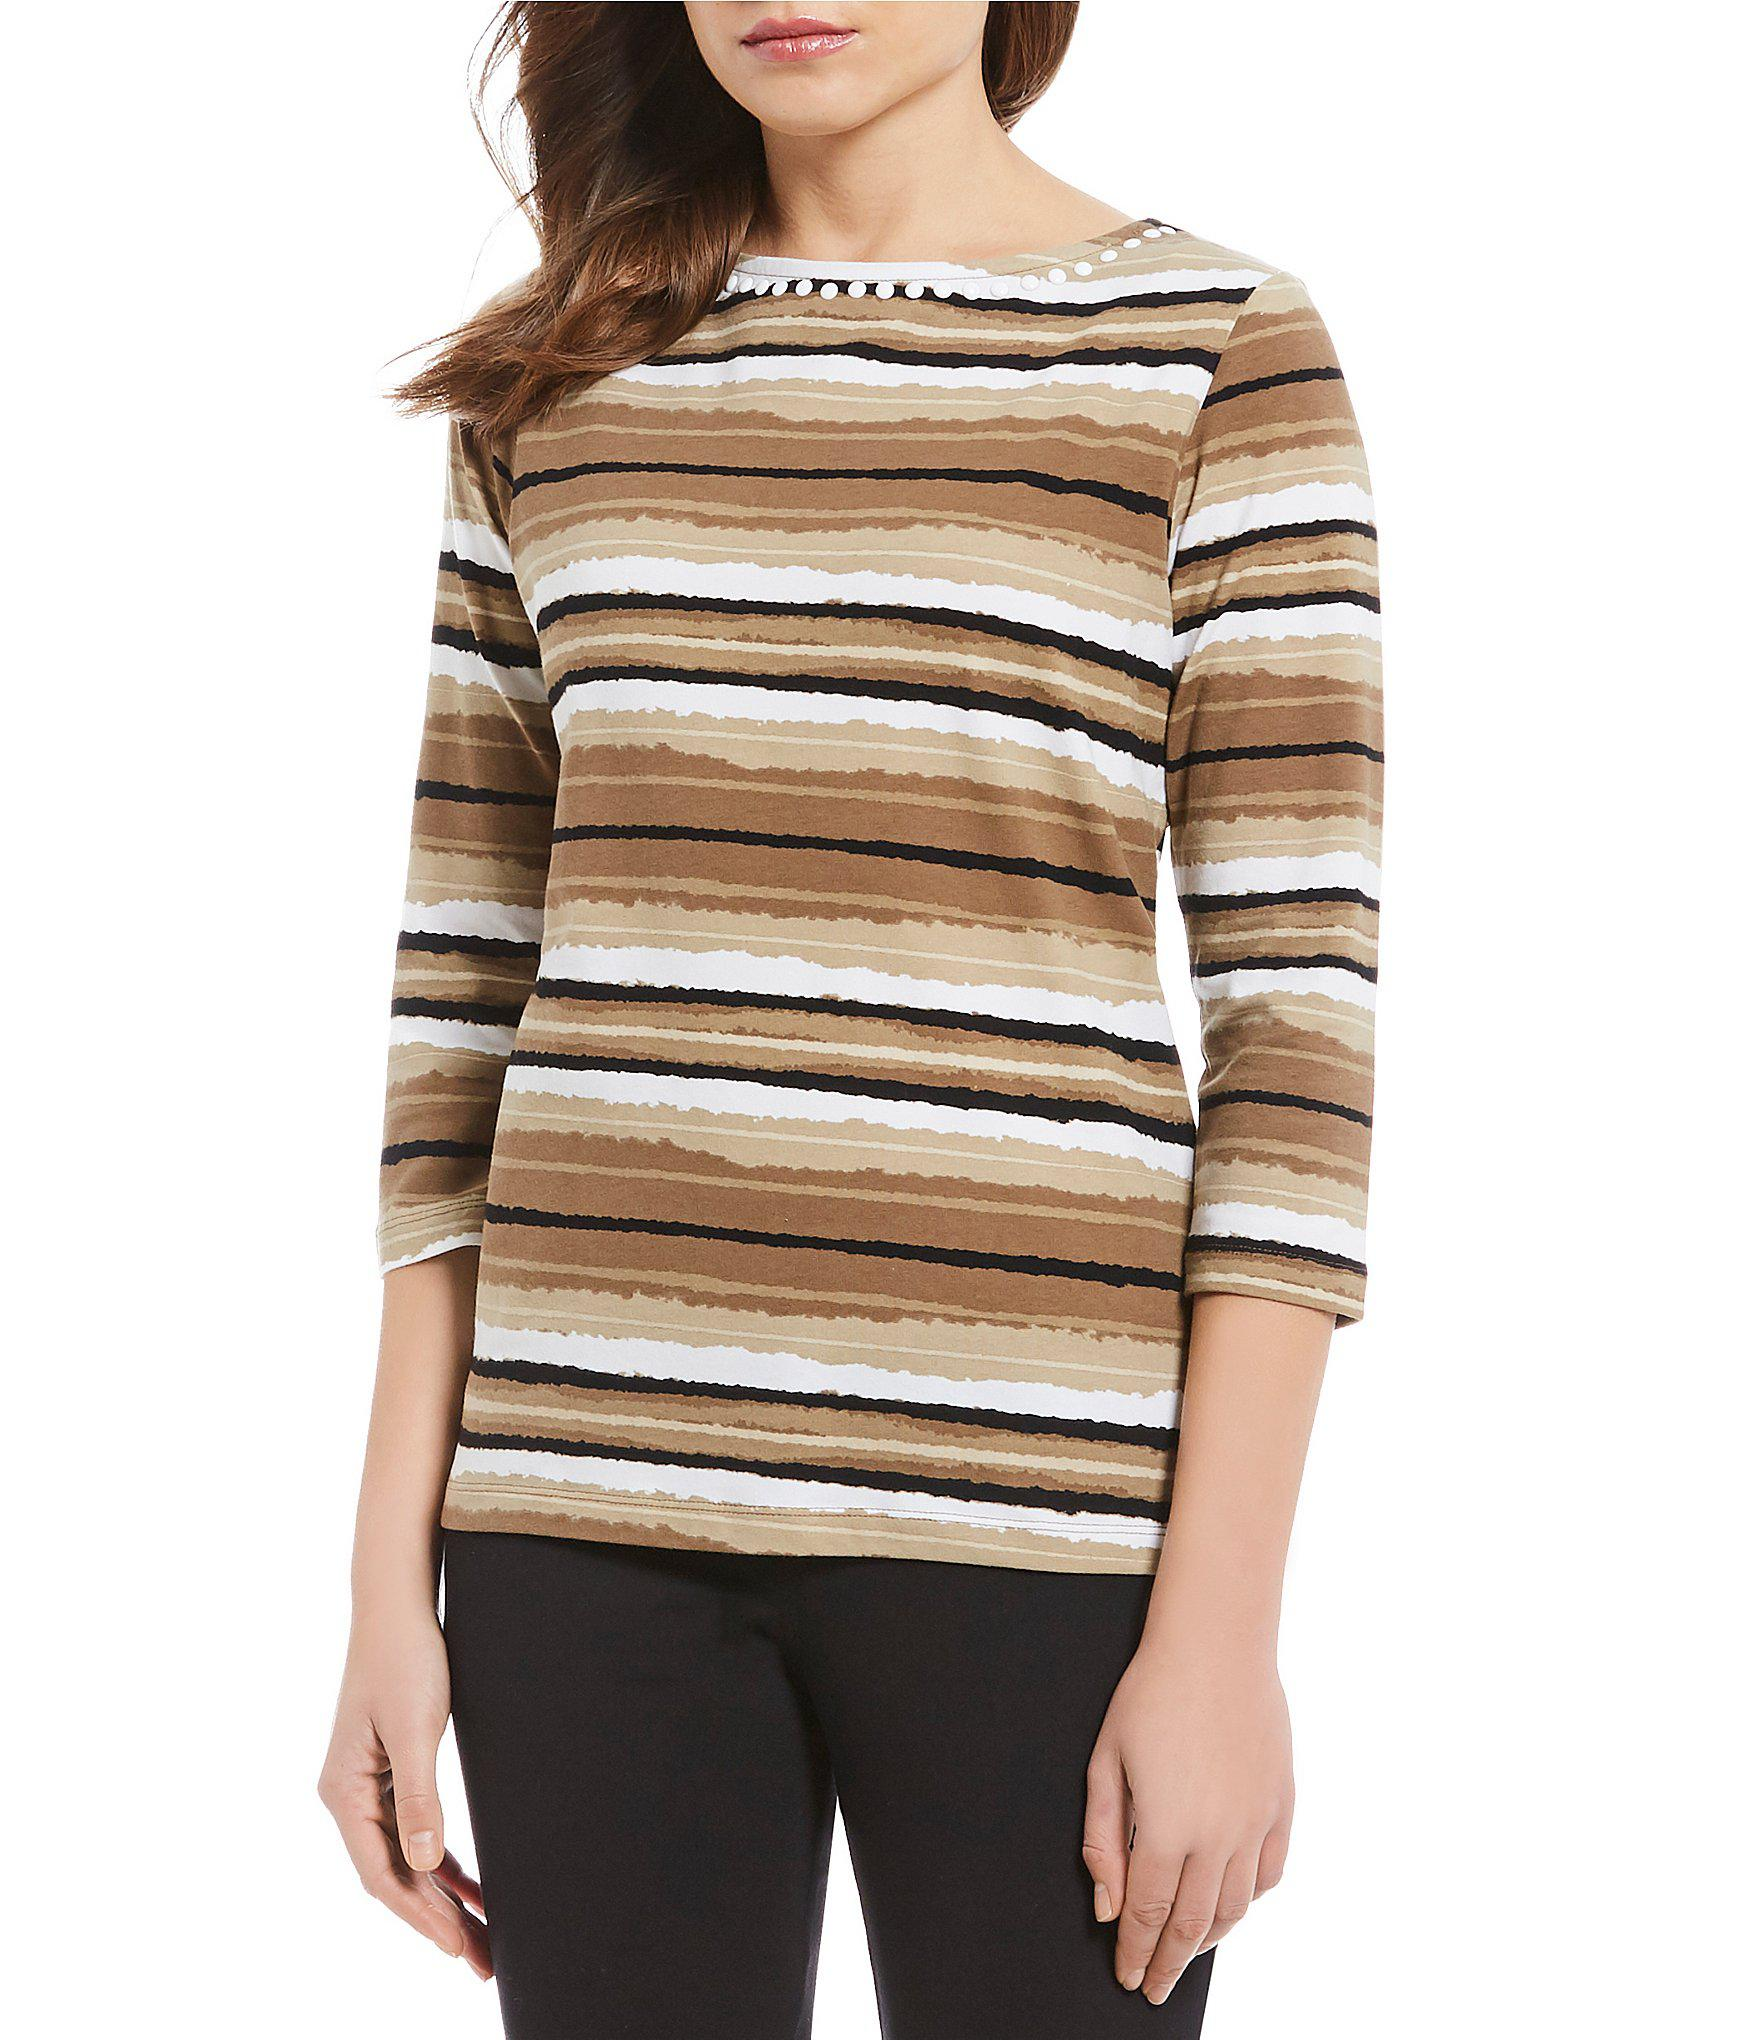 7192d042211 Lyst - Ruby Rd. Petite Size Embellished Boat Neck Painterly Stripe ...